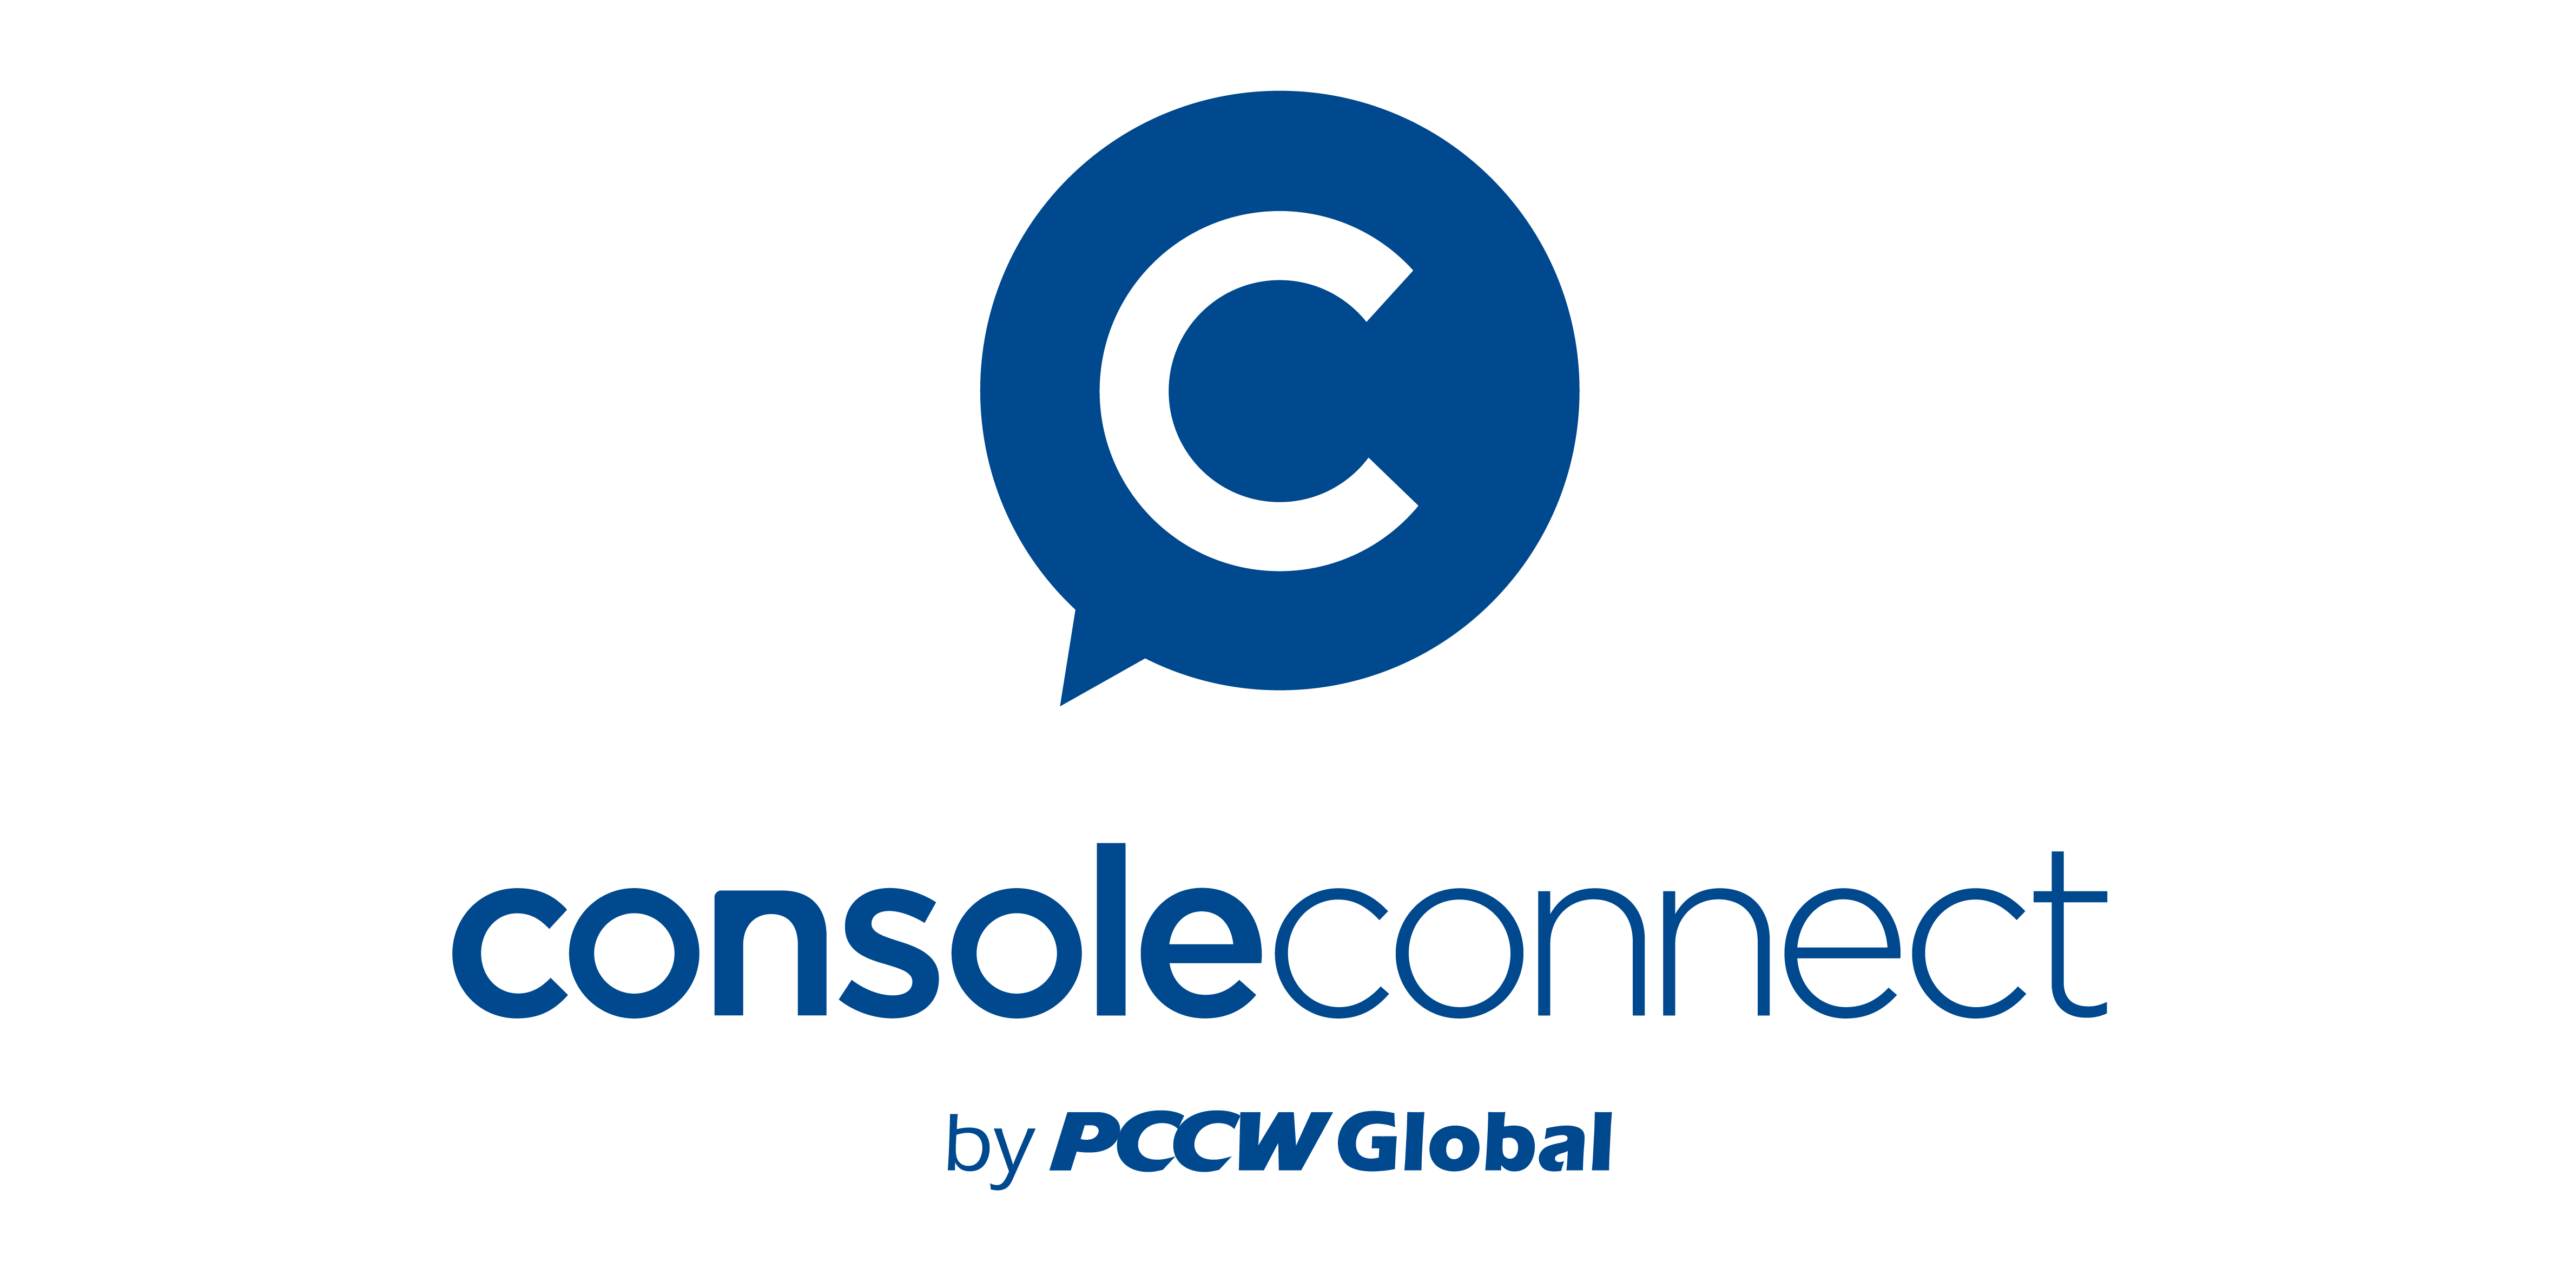 CC_by_PCCWG_Logo_LBlue_Stacked